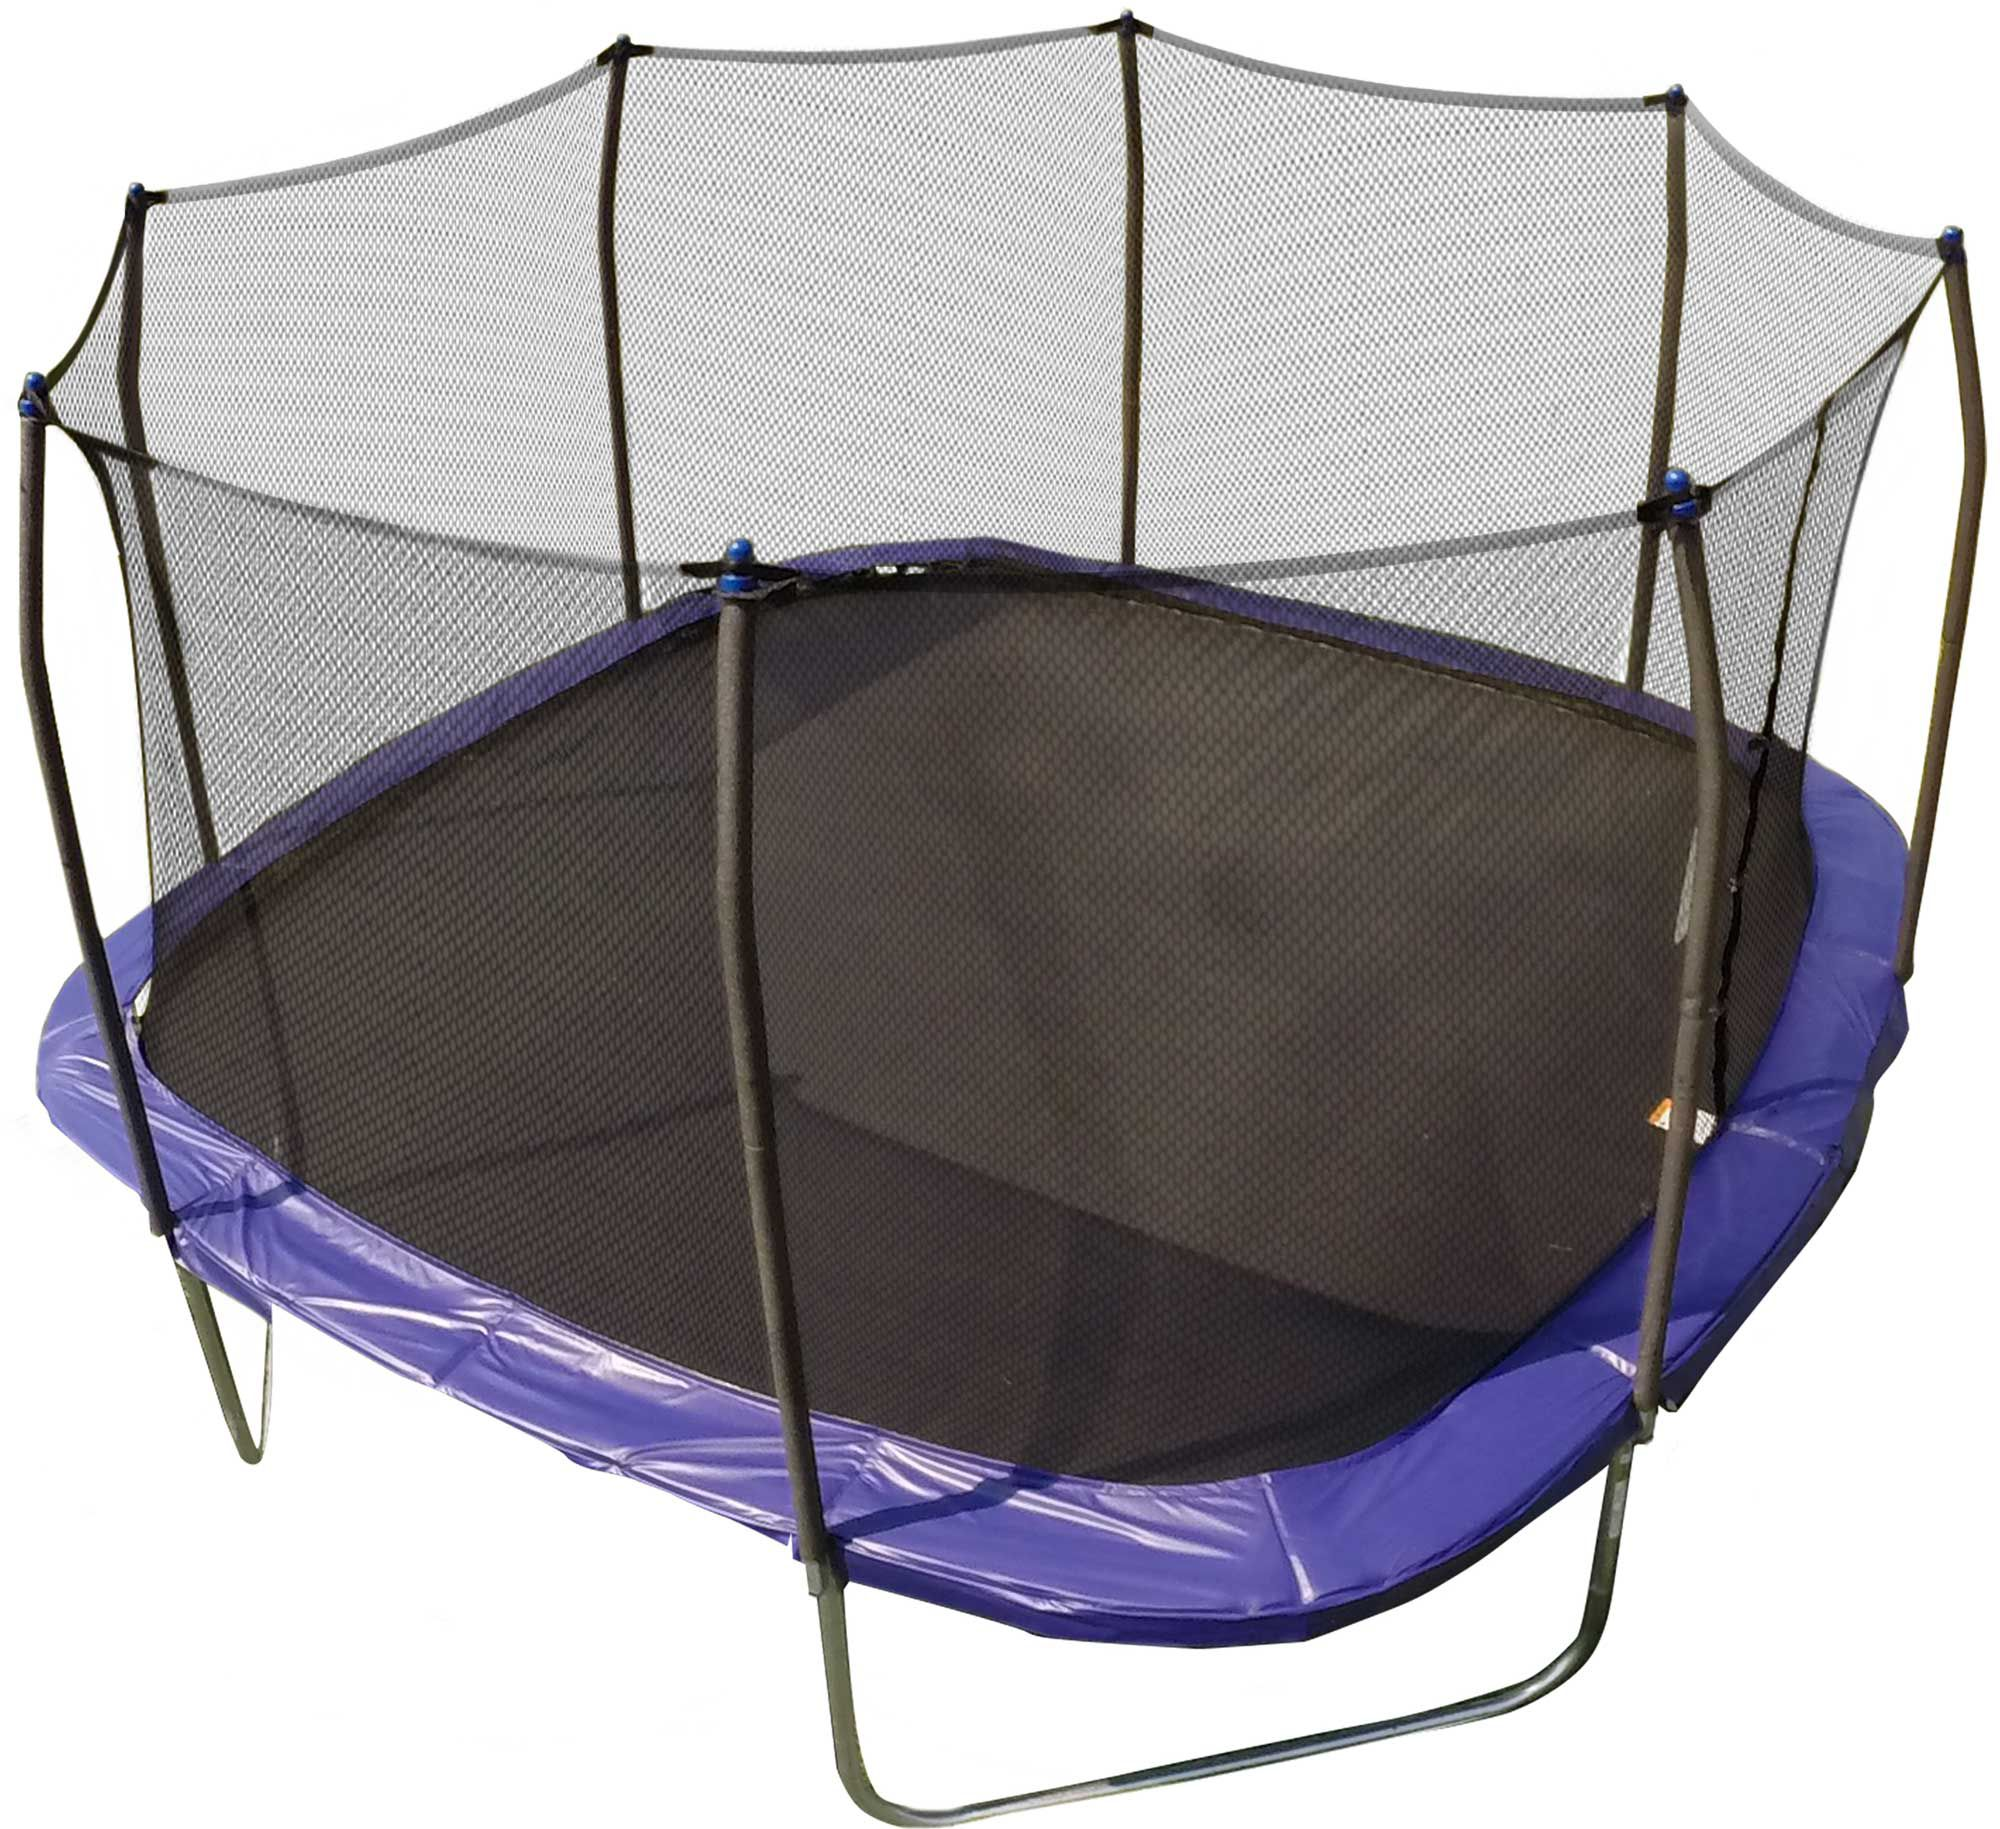 Skywalker Trampolines 13 Square Trampoline With Enclosure